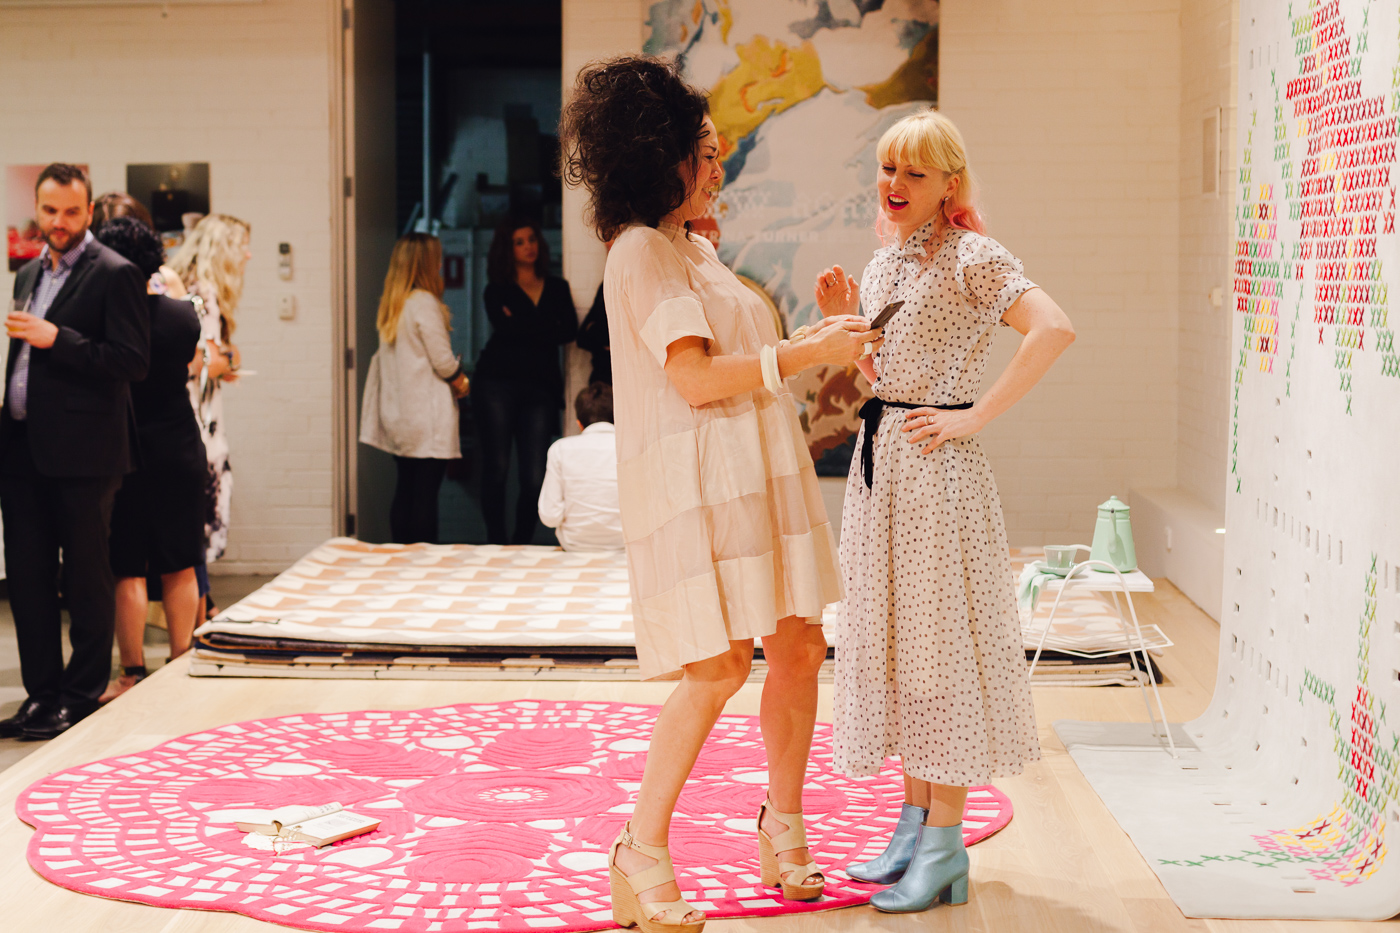 With Lynda Gardener | NEW AGAIN by Petrina Turner Design for Designer Rugs | The launch event